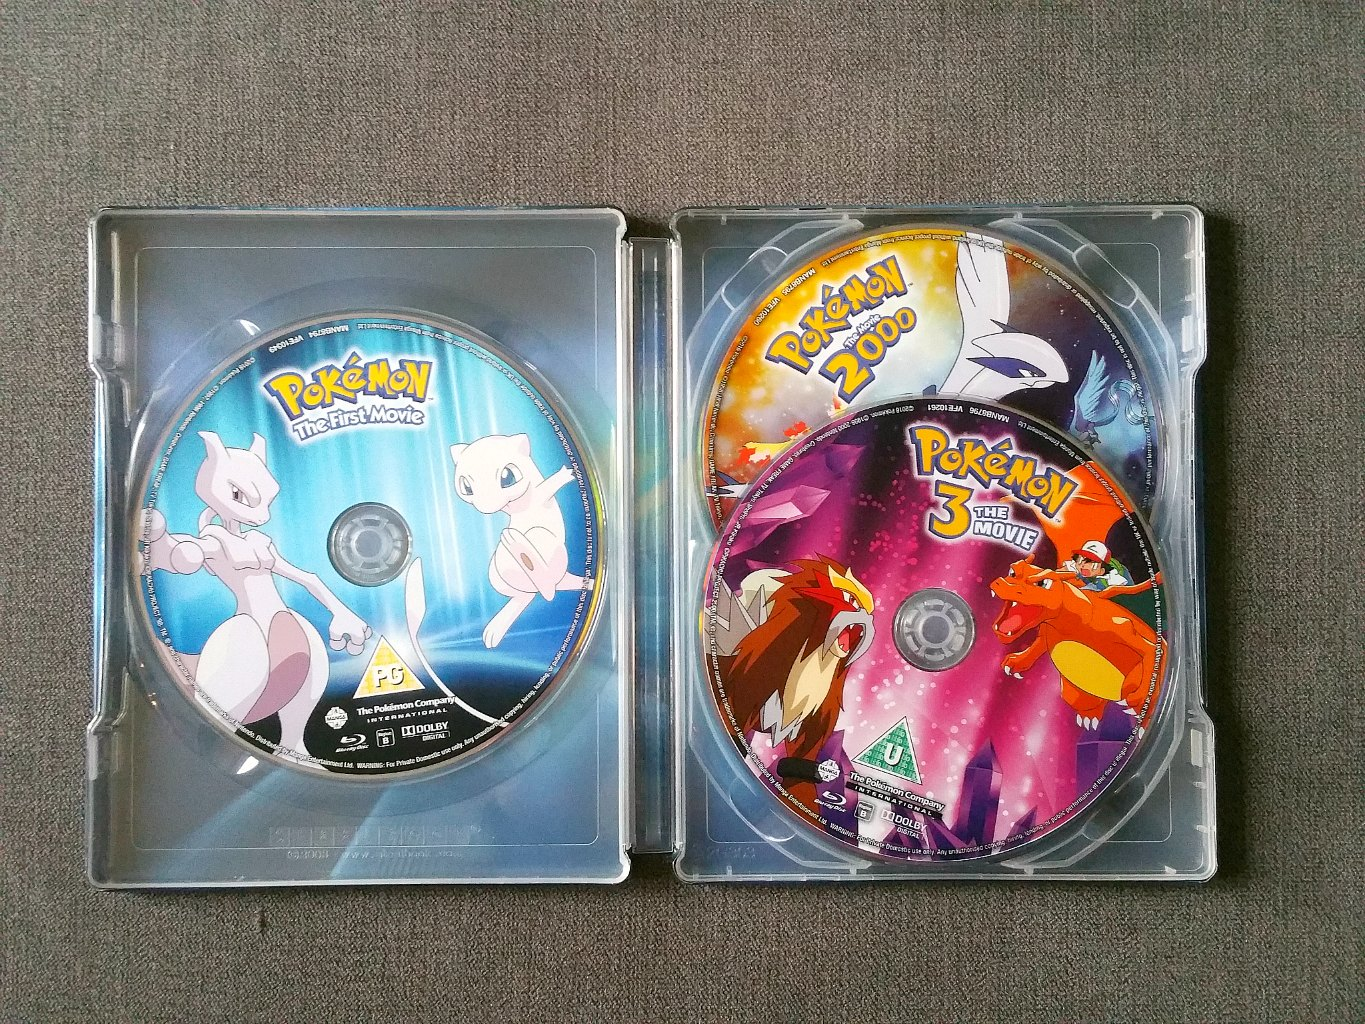 Pokemon 20 anniversary, Pokemon Movie Collection Limited Edition, Pokemon Christmas